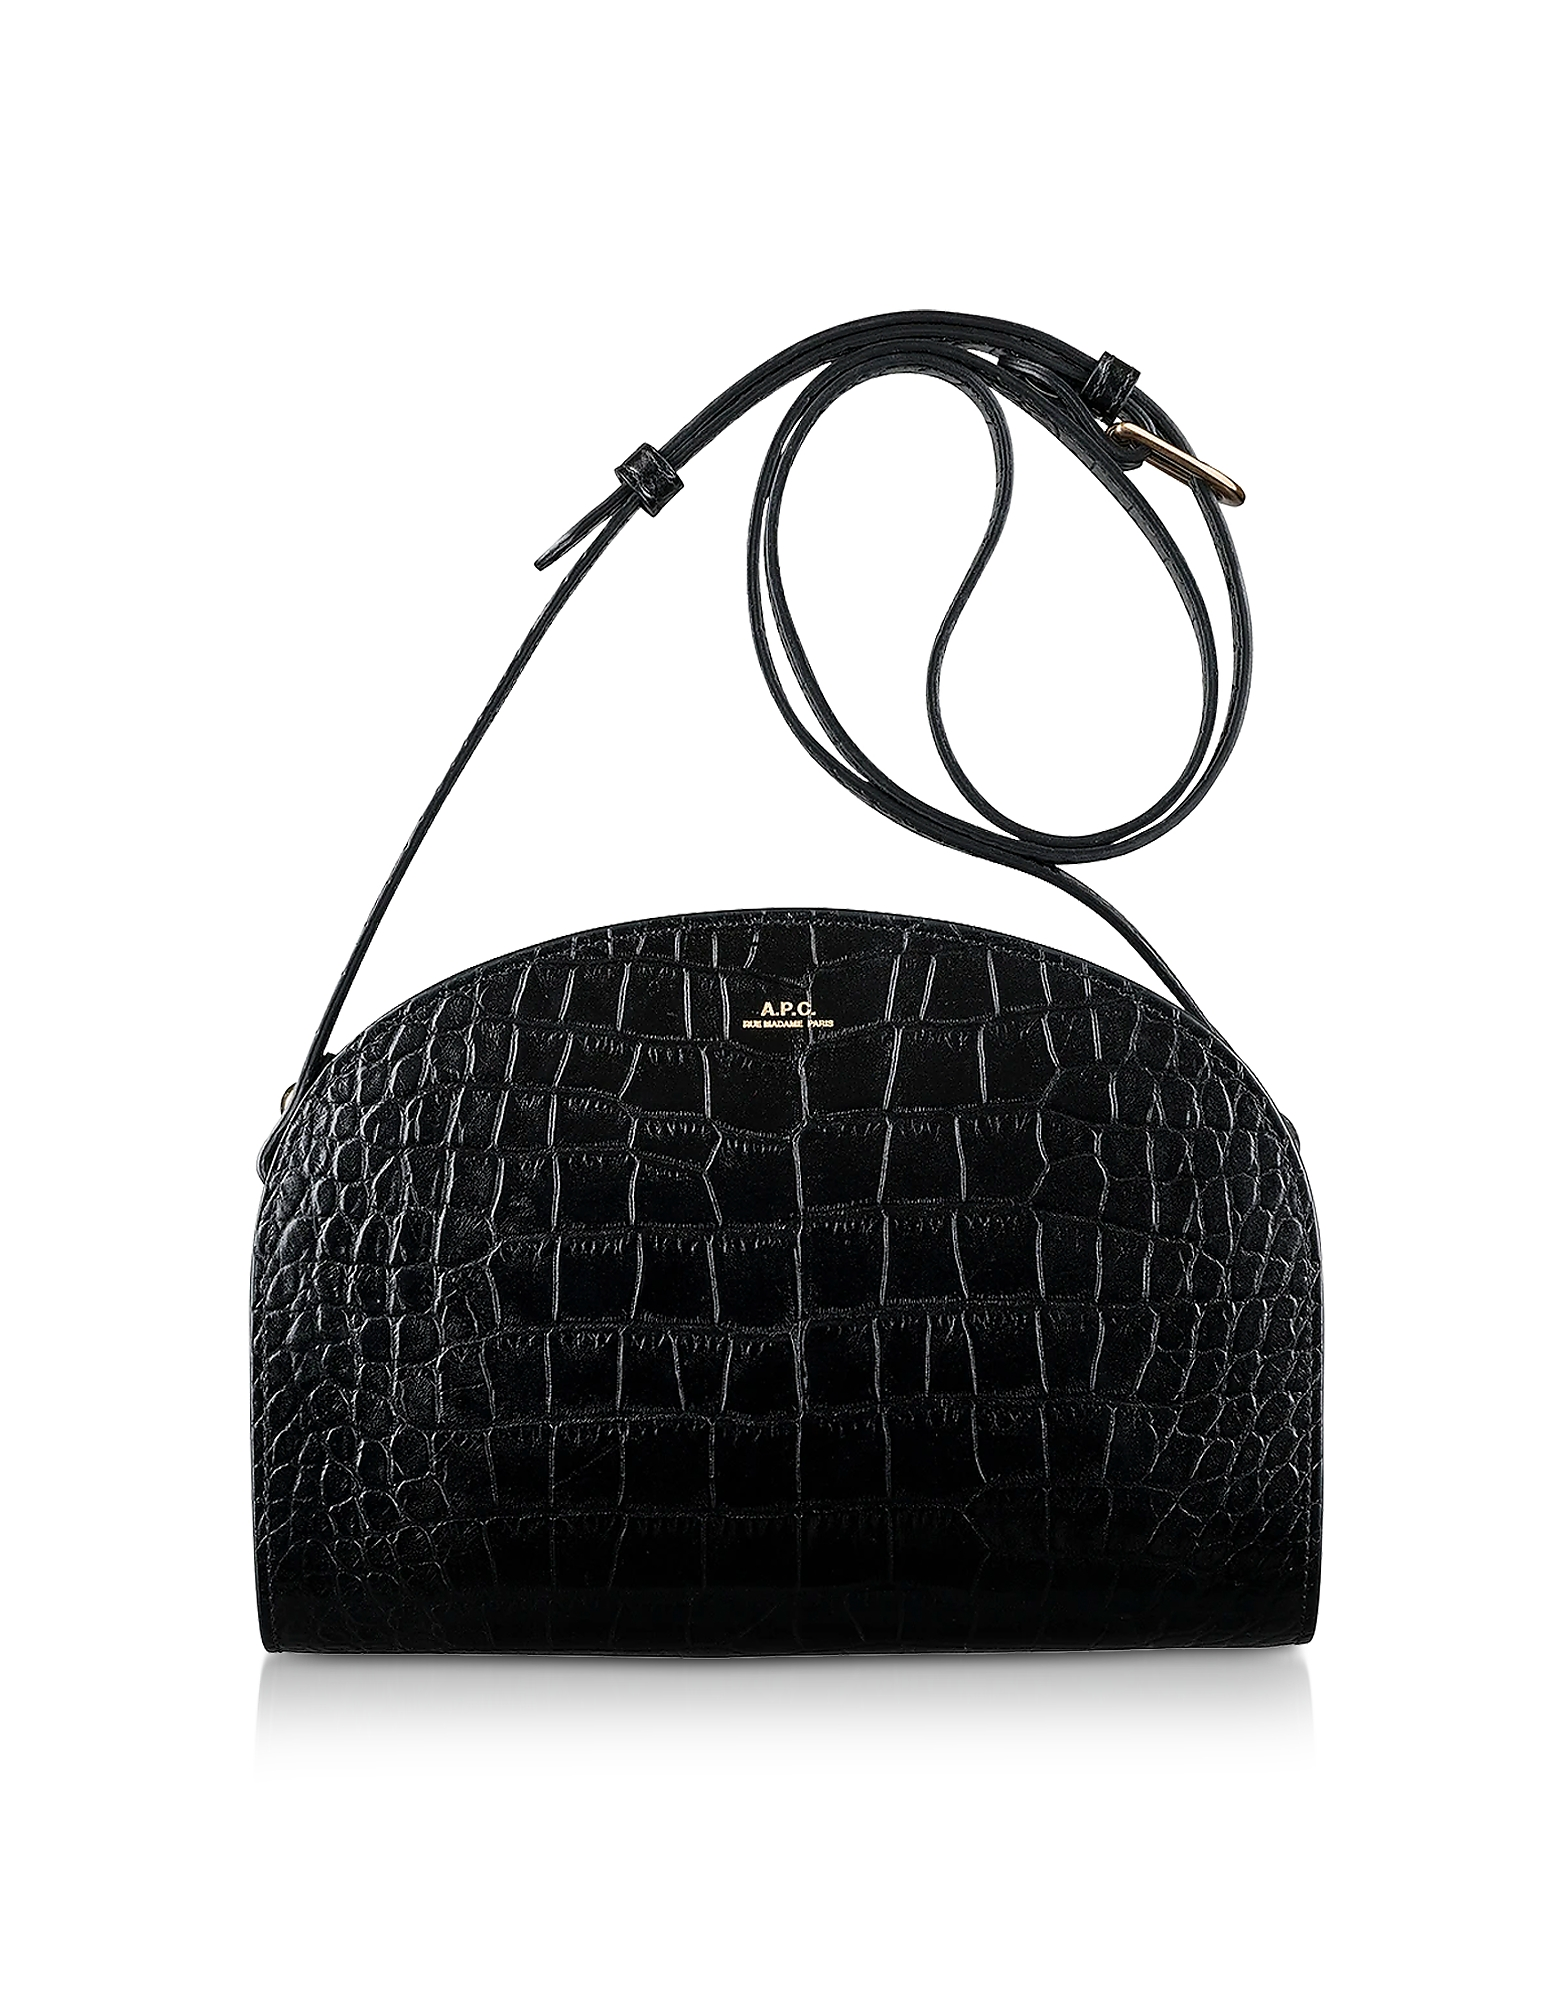 A.P.C. Designer Handbags, Black Croco Embossed Leather Demi-Lune Shoulder Bag